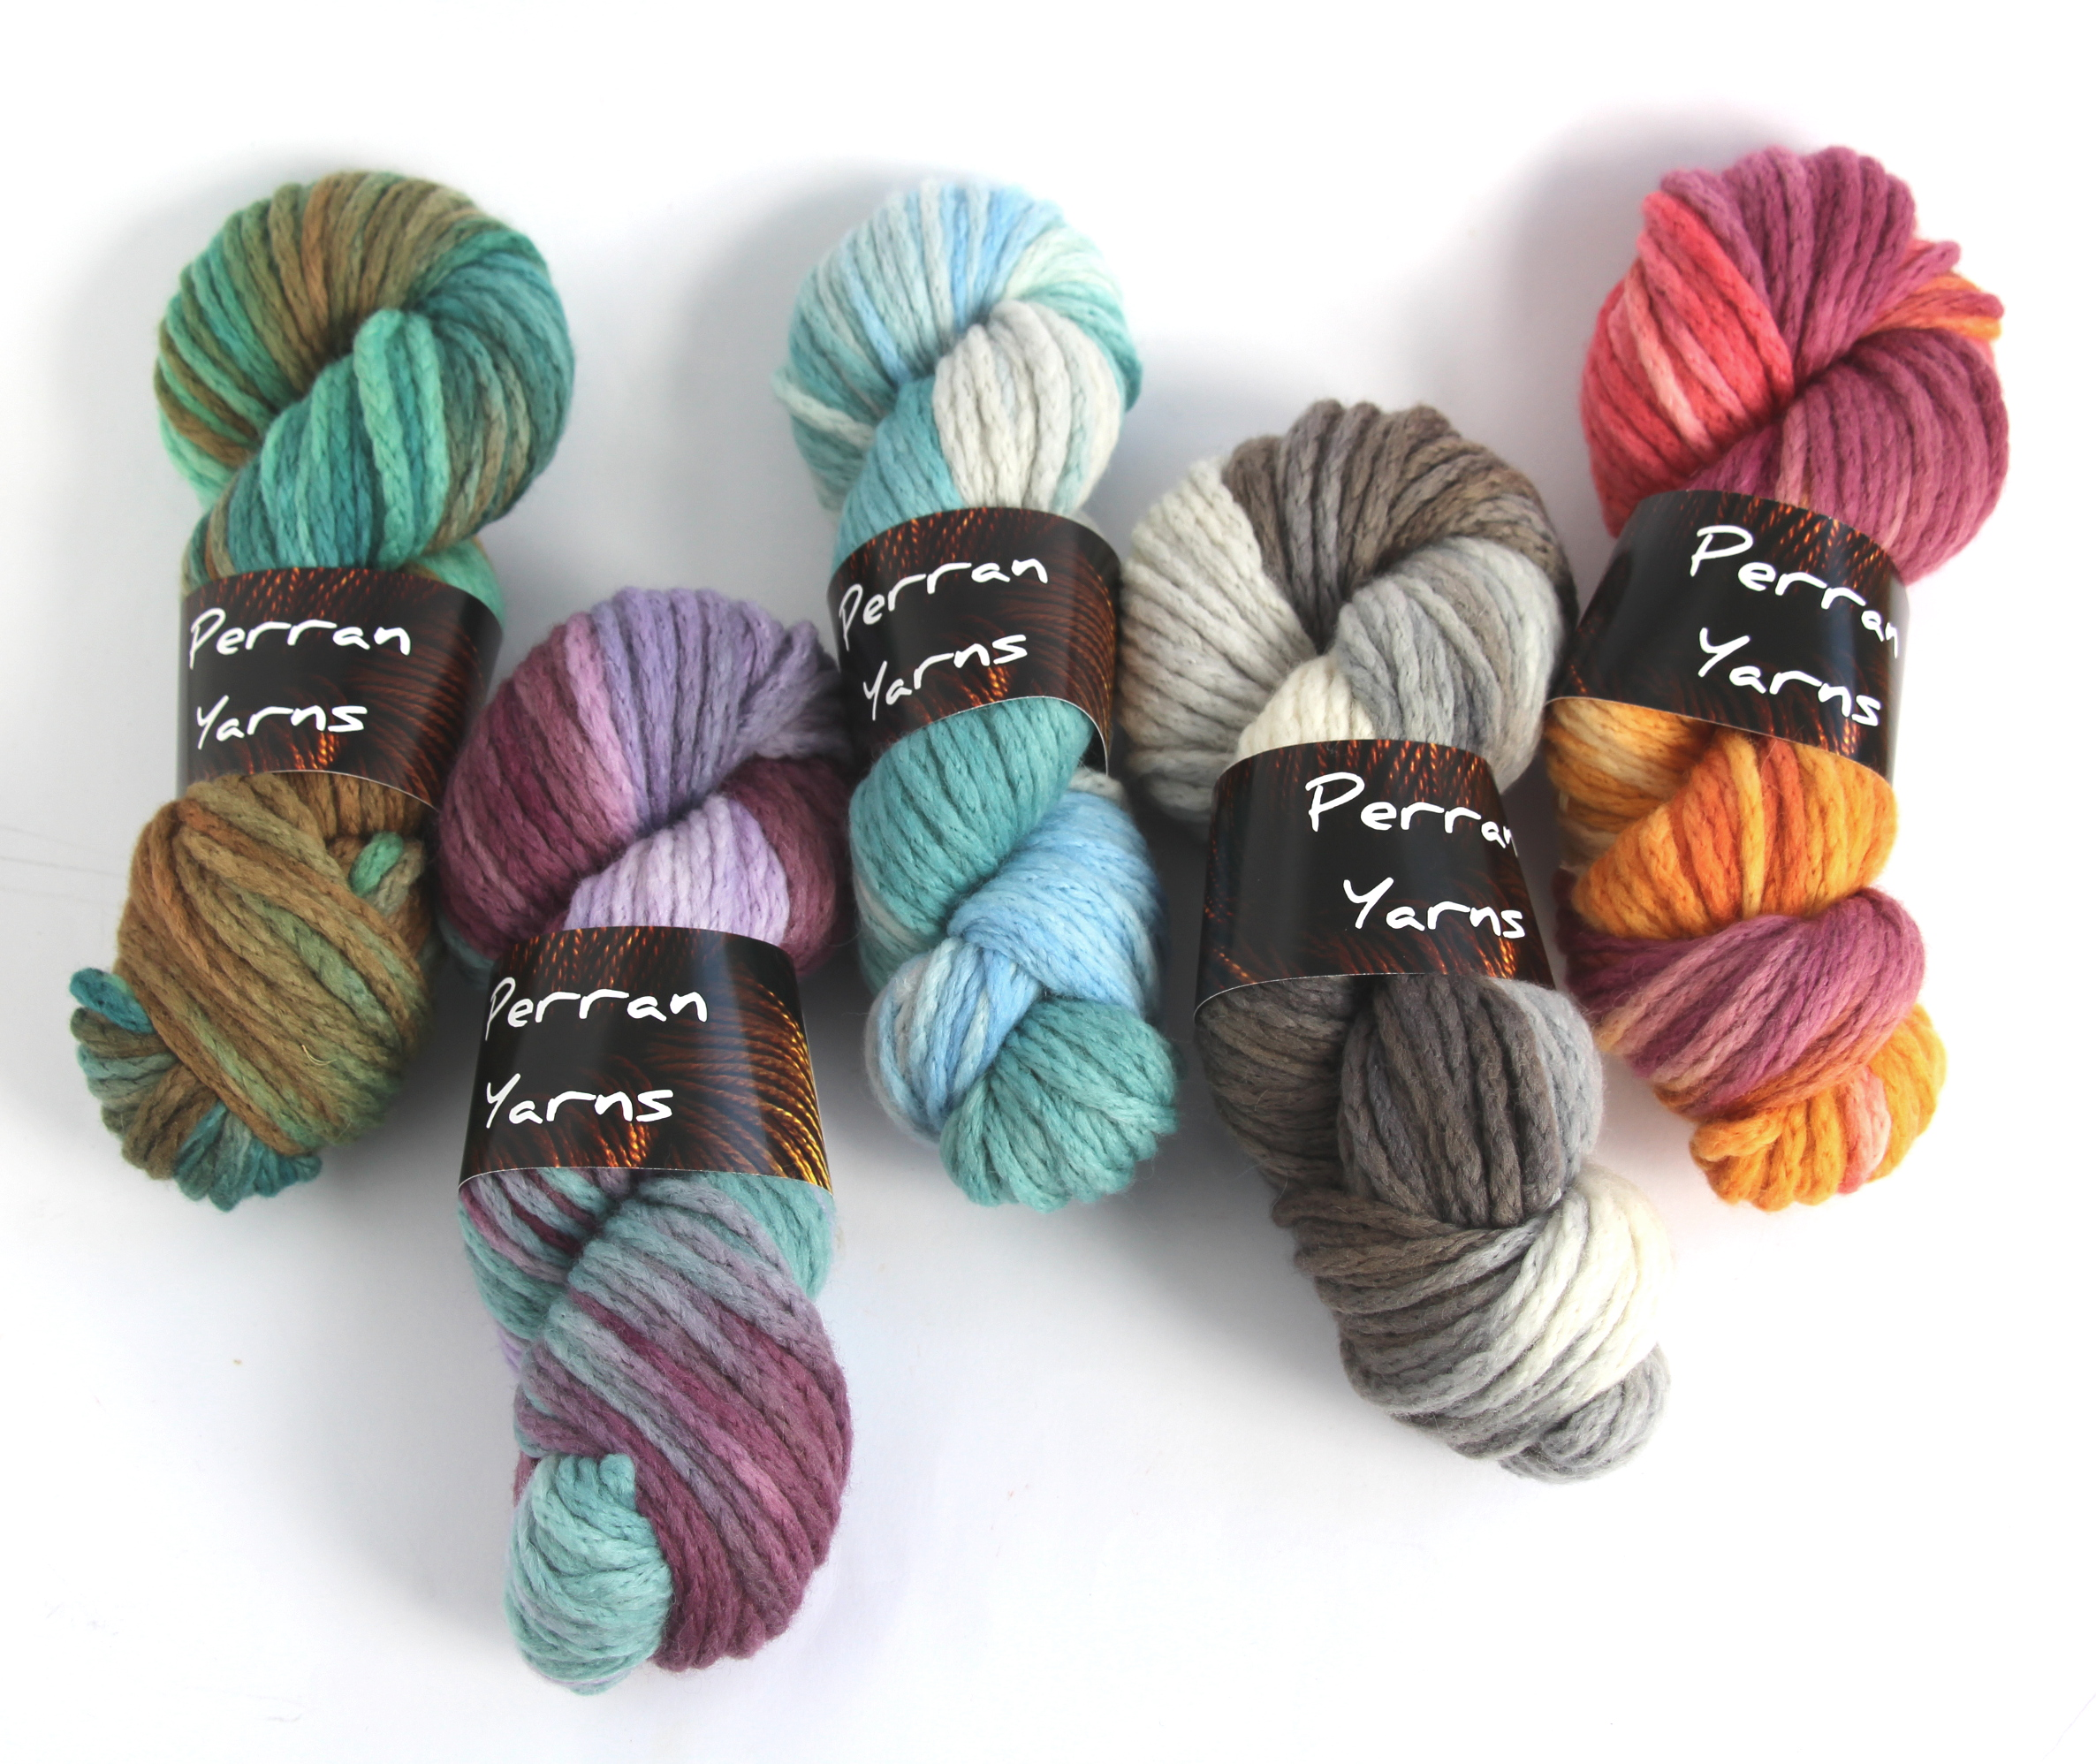 Superchunky Merino Chainette colours available at Laughing Hens this month!